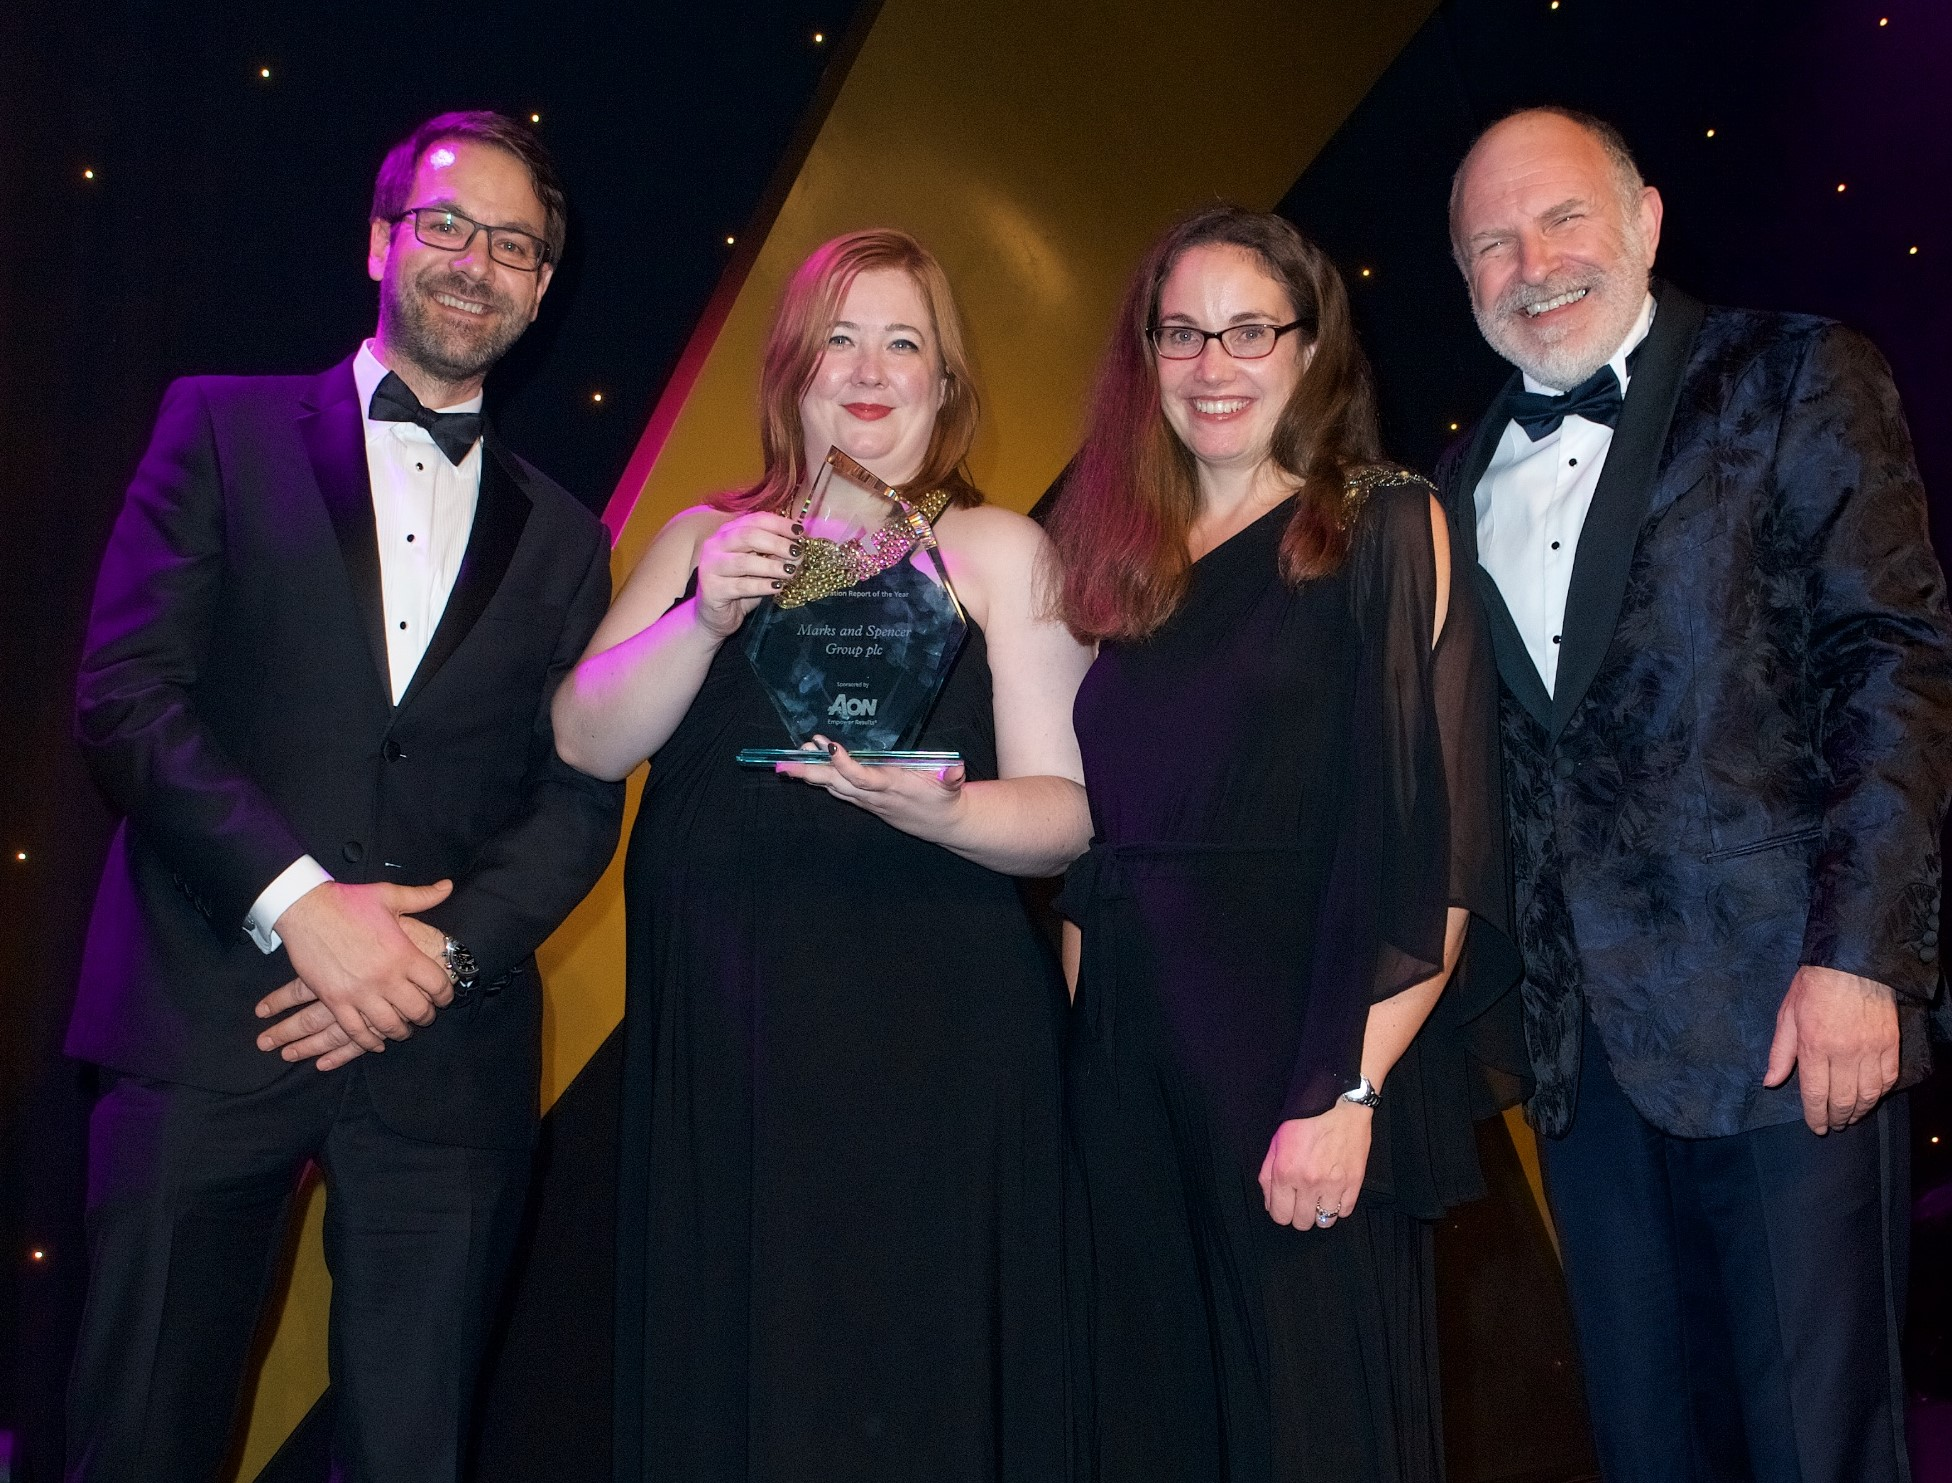 ICSA Awards - Remuneration Report of the Year